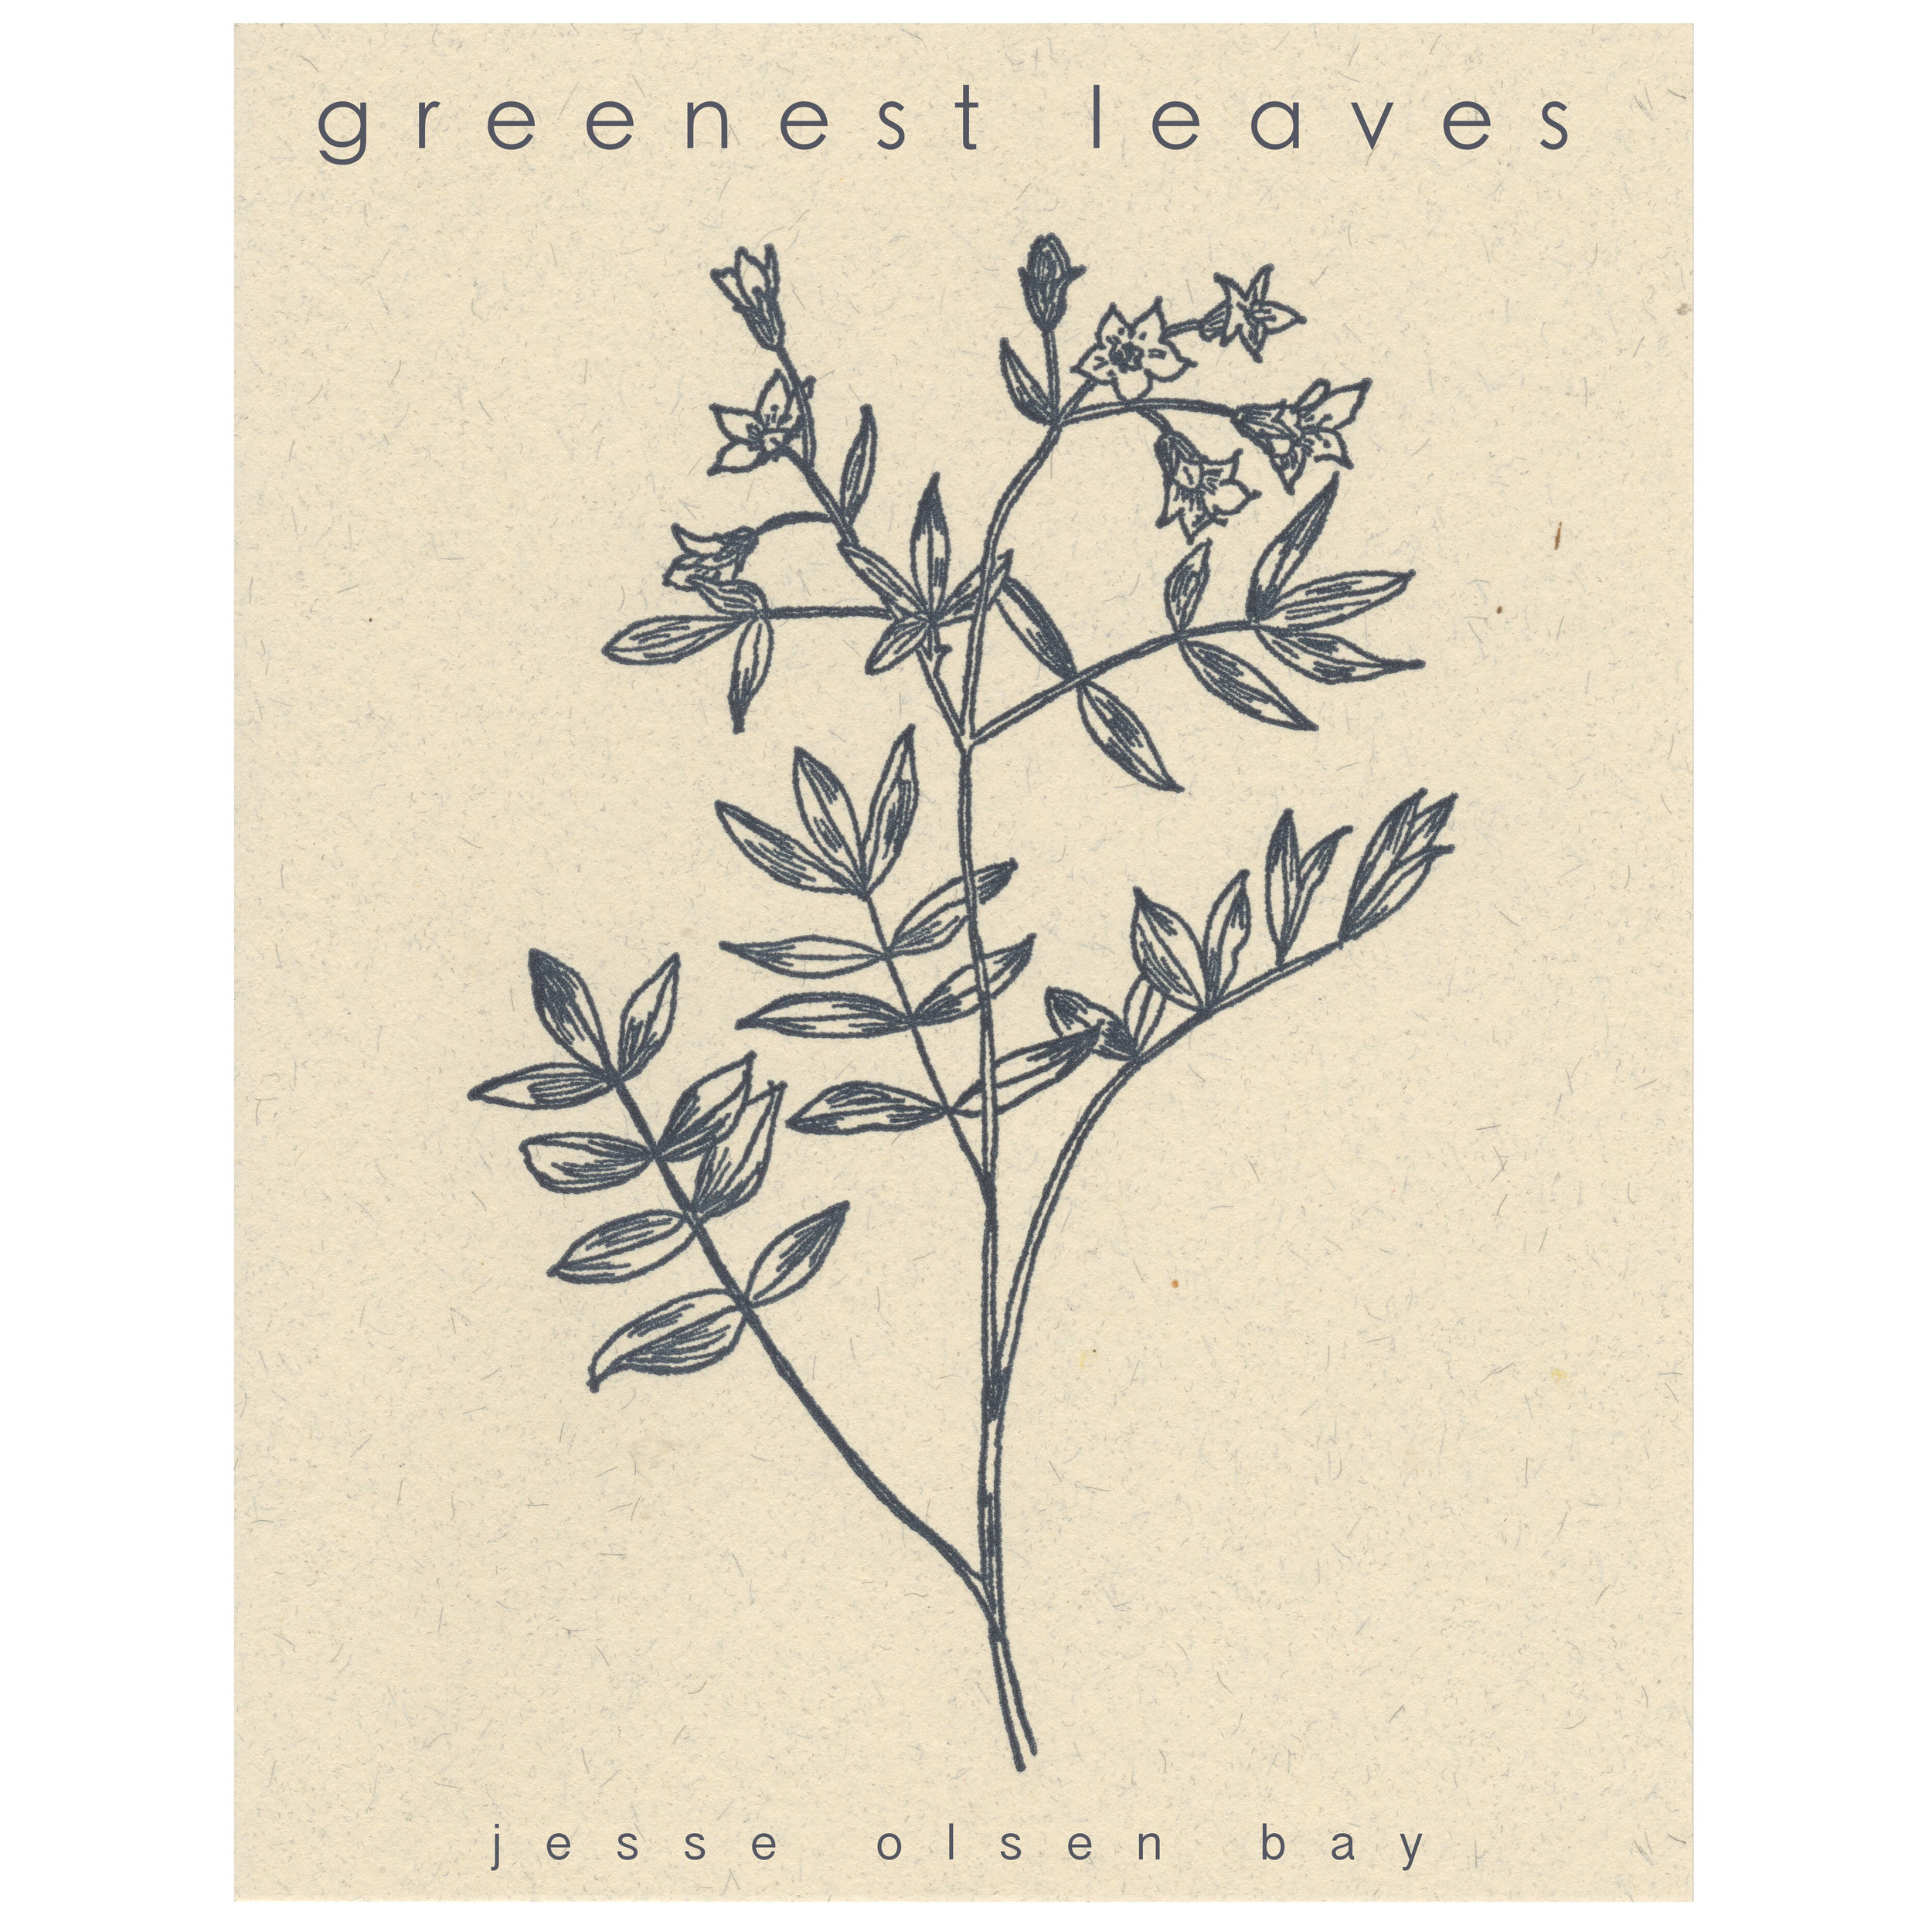 greenest-leaves.jpg